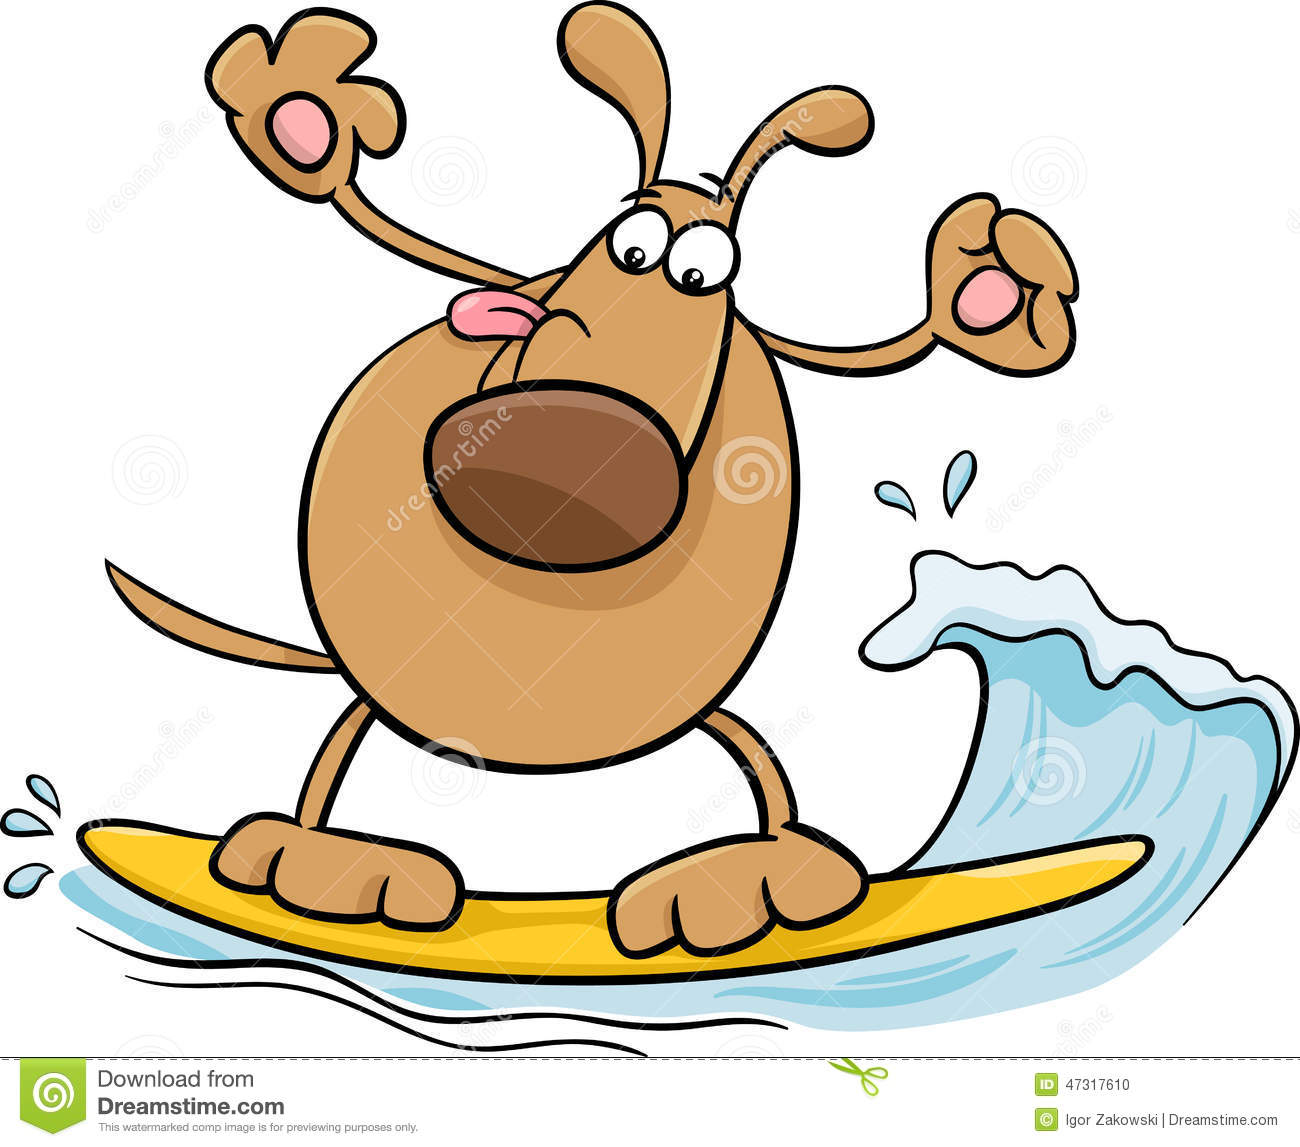 Dog on surfboard clipart jpg free library Dog Surfboard Stock Illustrations – 37 Dog Surfboard Stock ... jpg free library